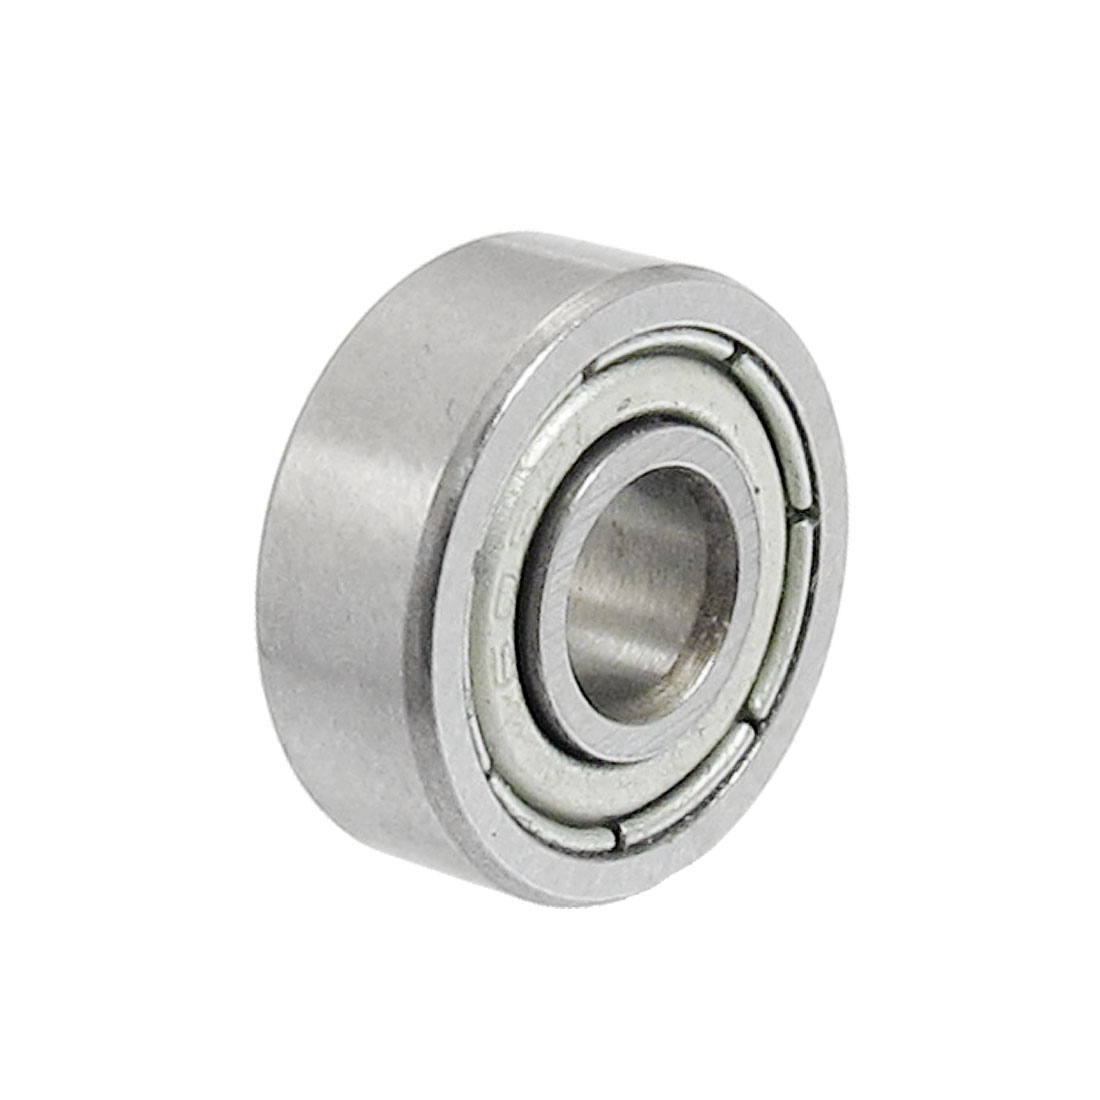 5 x 14 x 5mm 605 Shielded Miniature Deep Groove Radial Ball Bearing